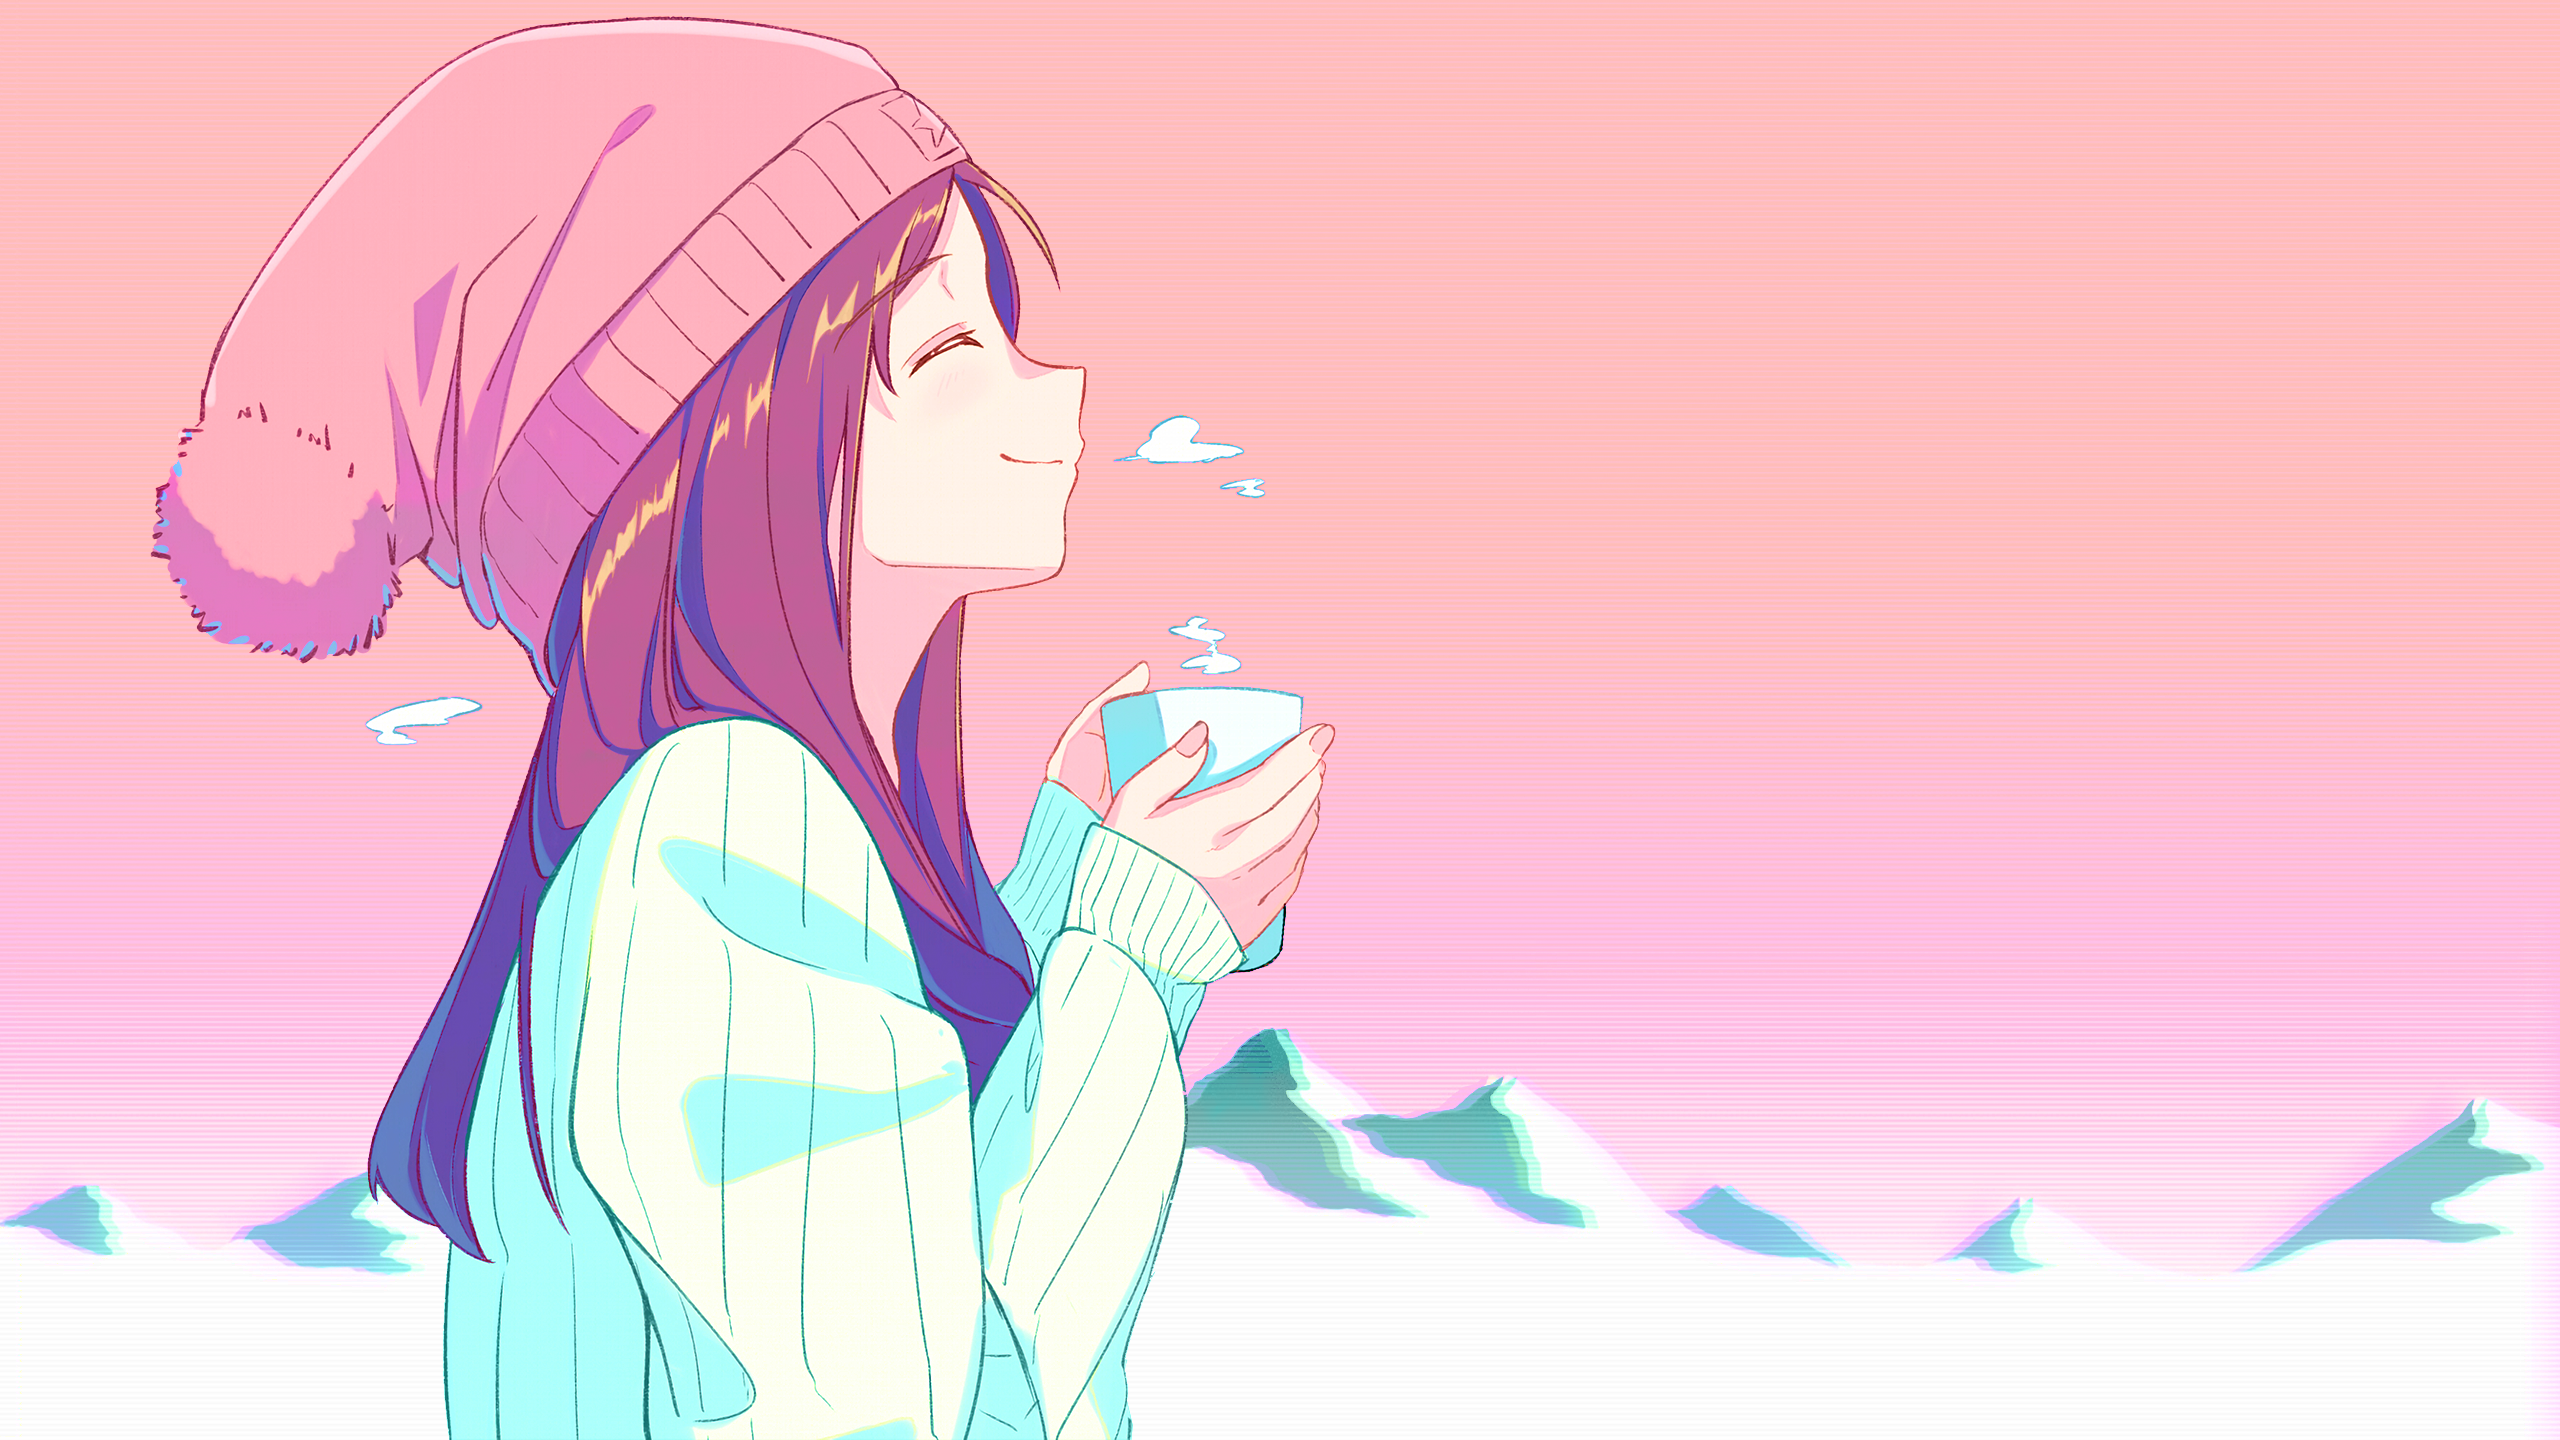 Tea Girl [Original](2560x1440) : Animewallpaper